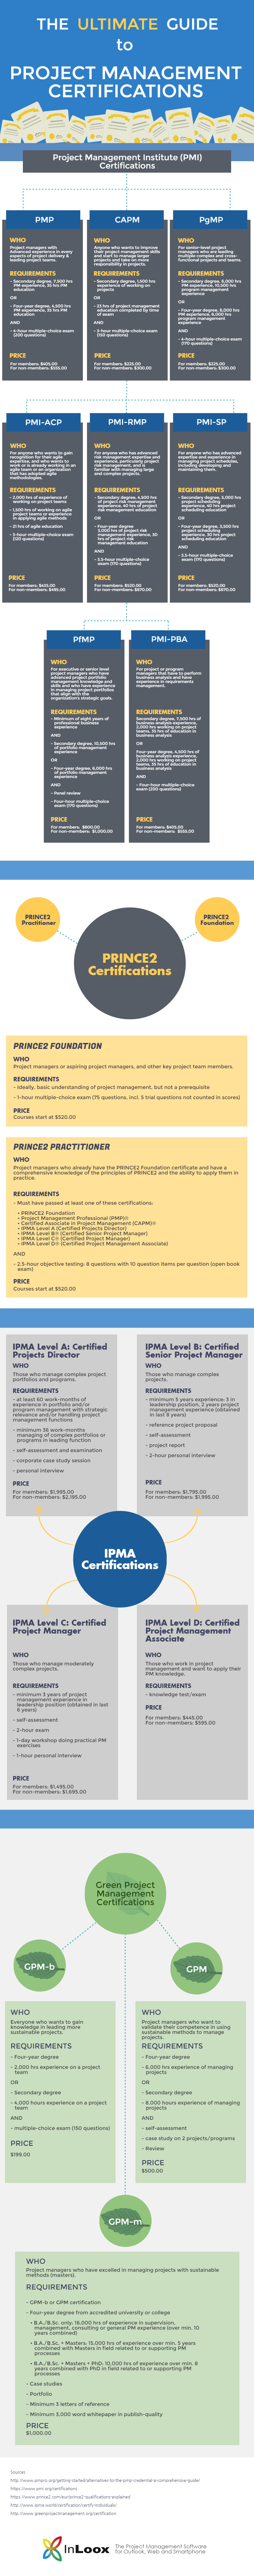 The Ultimate Guide to Project Management Certifications